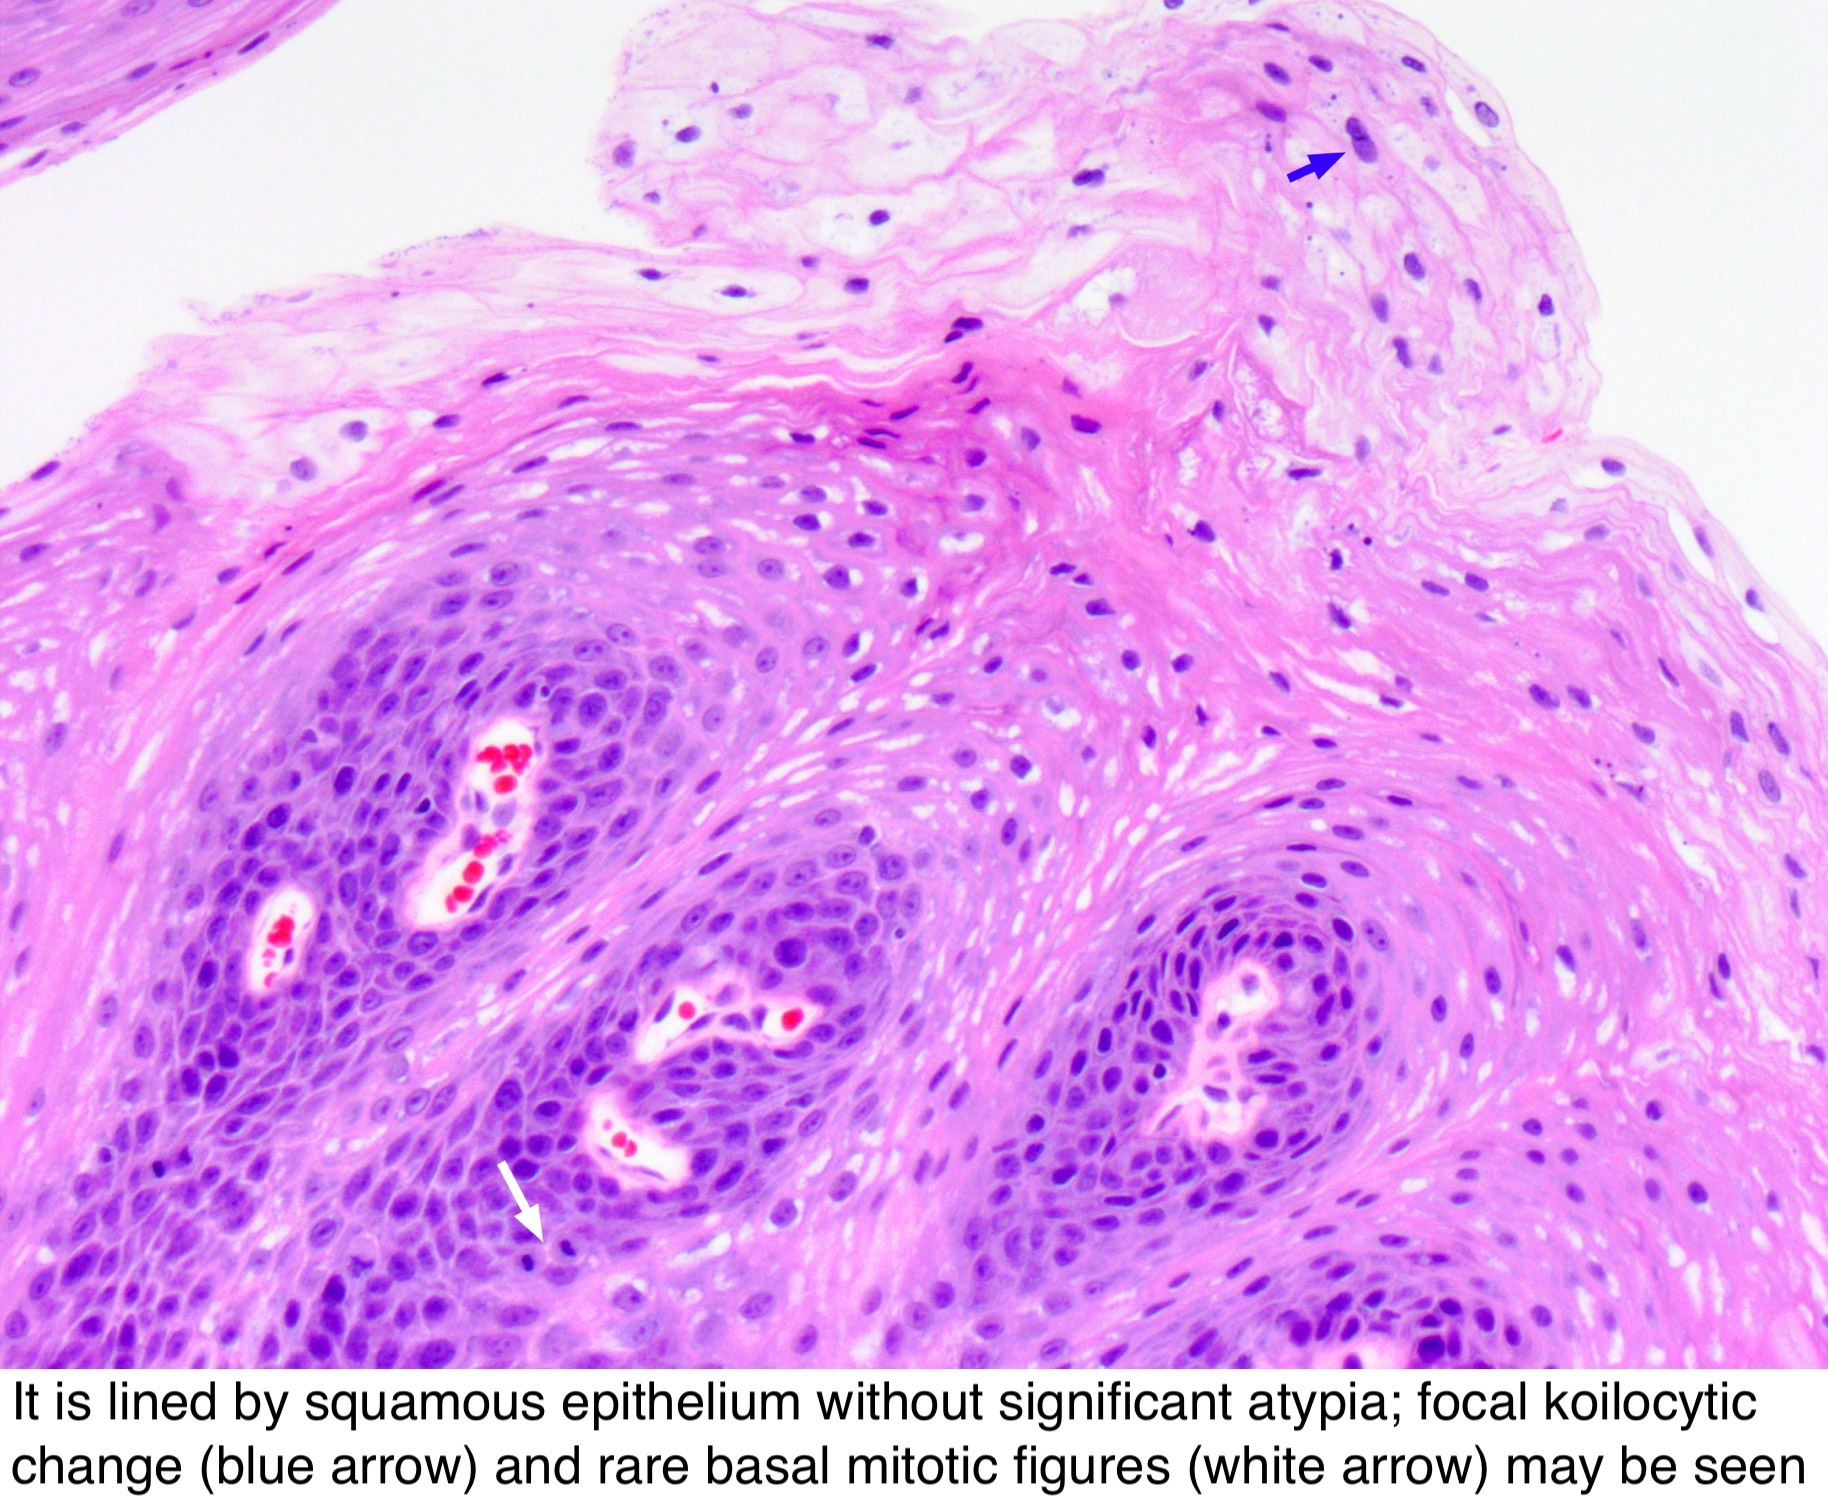 intraductal papilloma fibrocystic changes